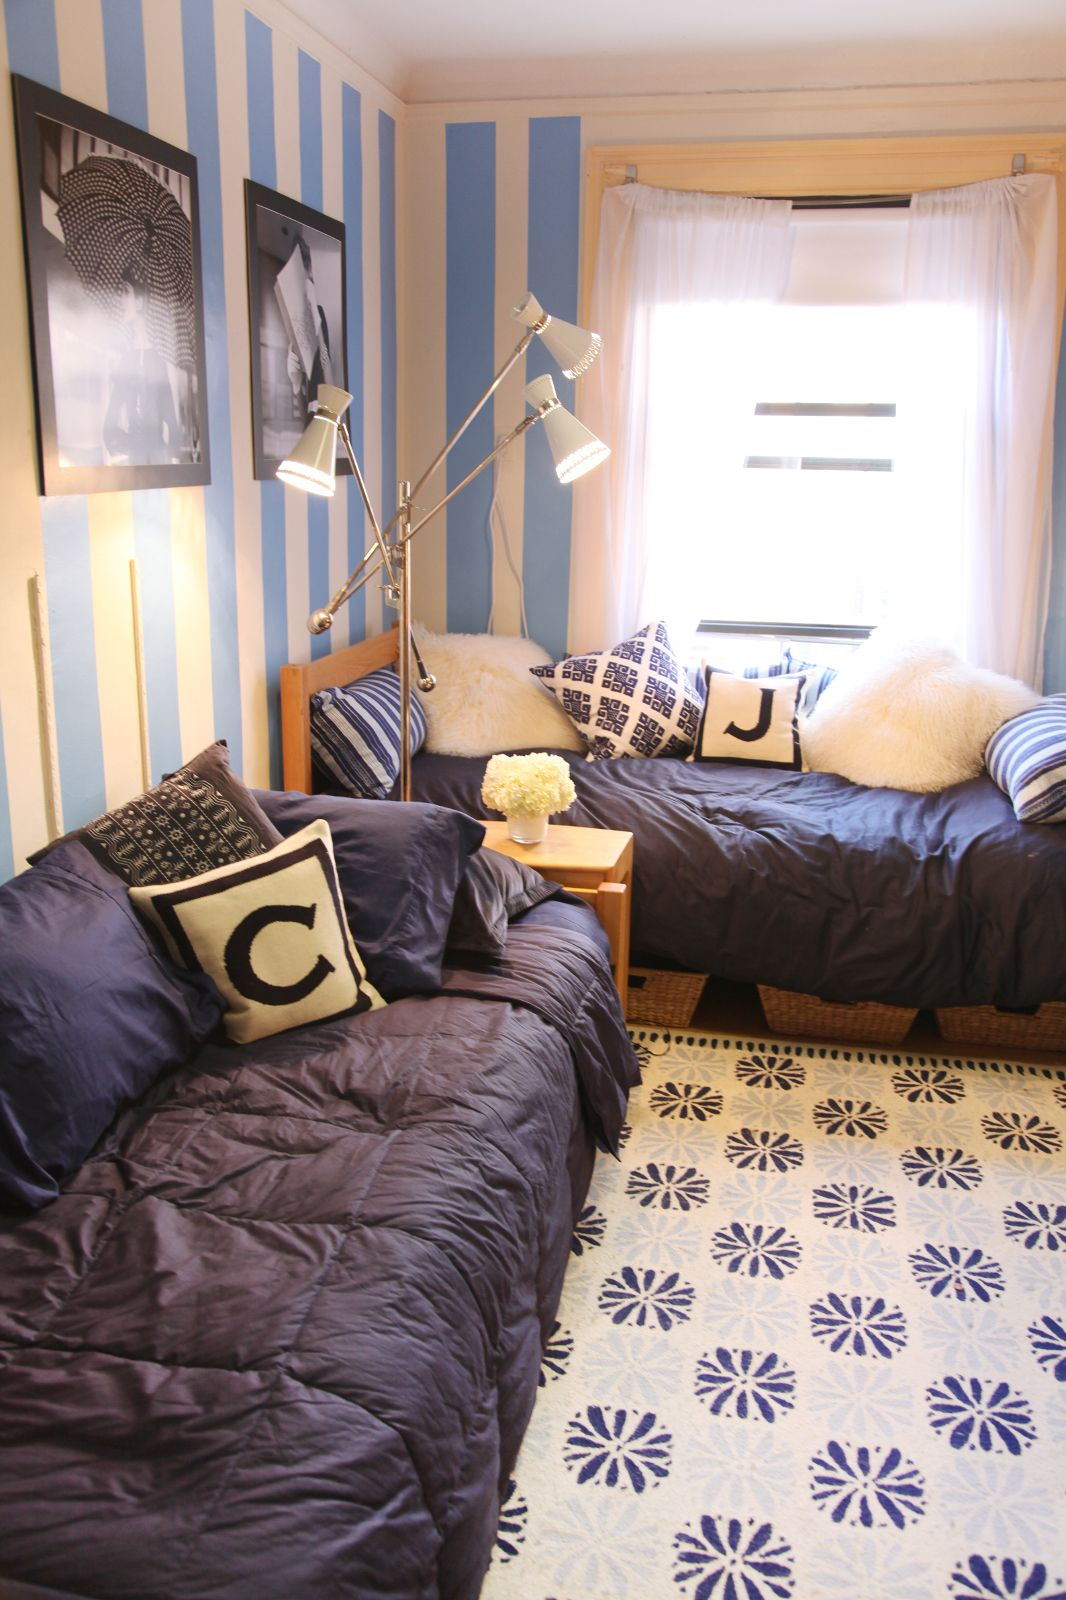 Dorm Room Layouts: Cool Decorating Ideas For Dorm Rooms